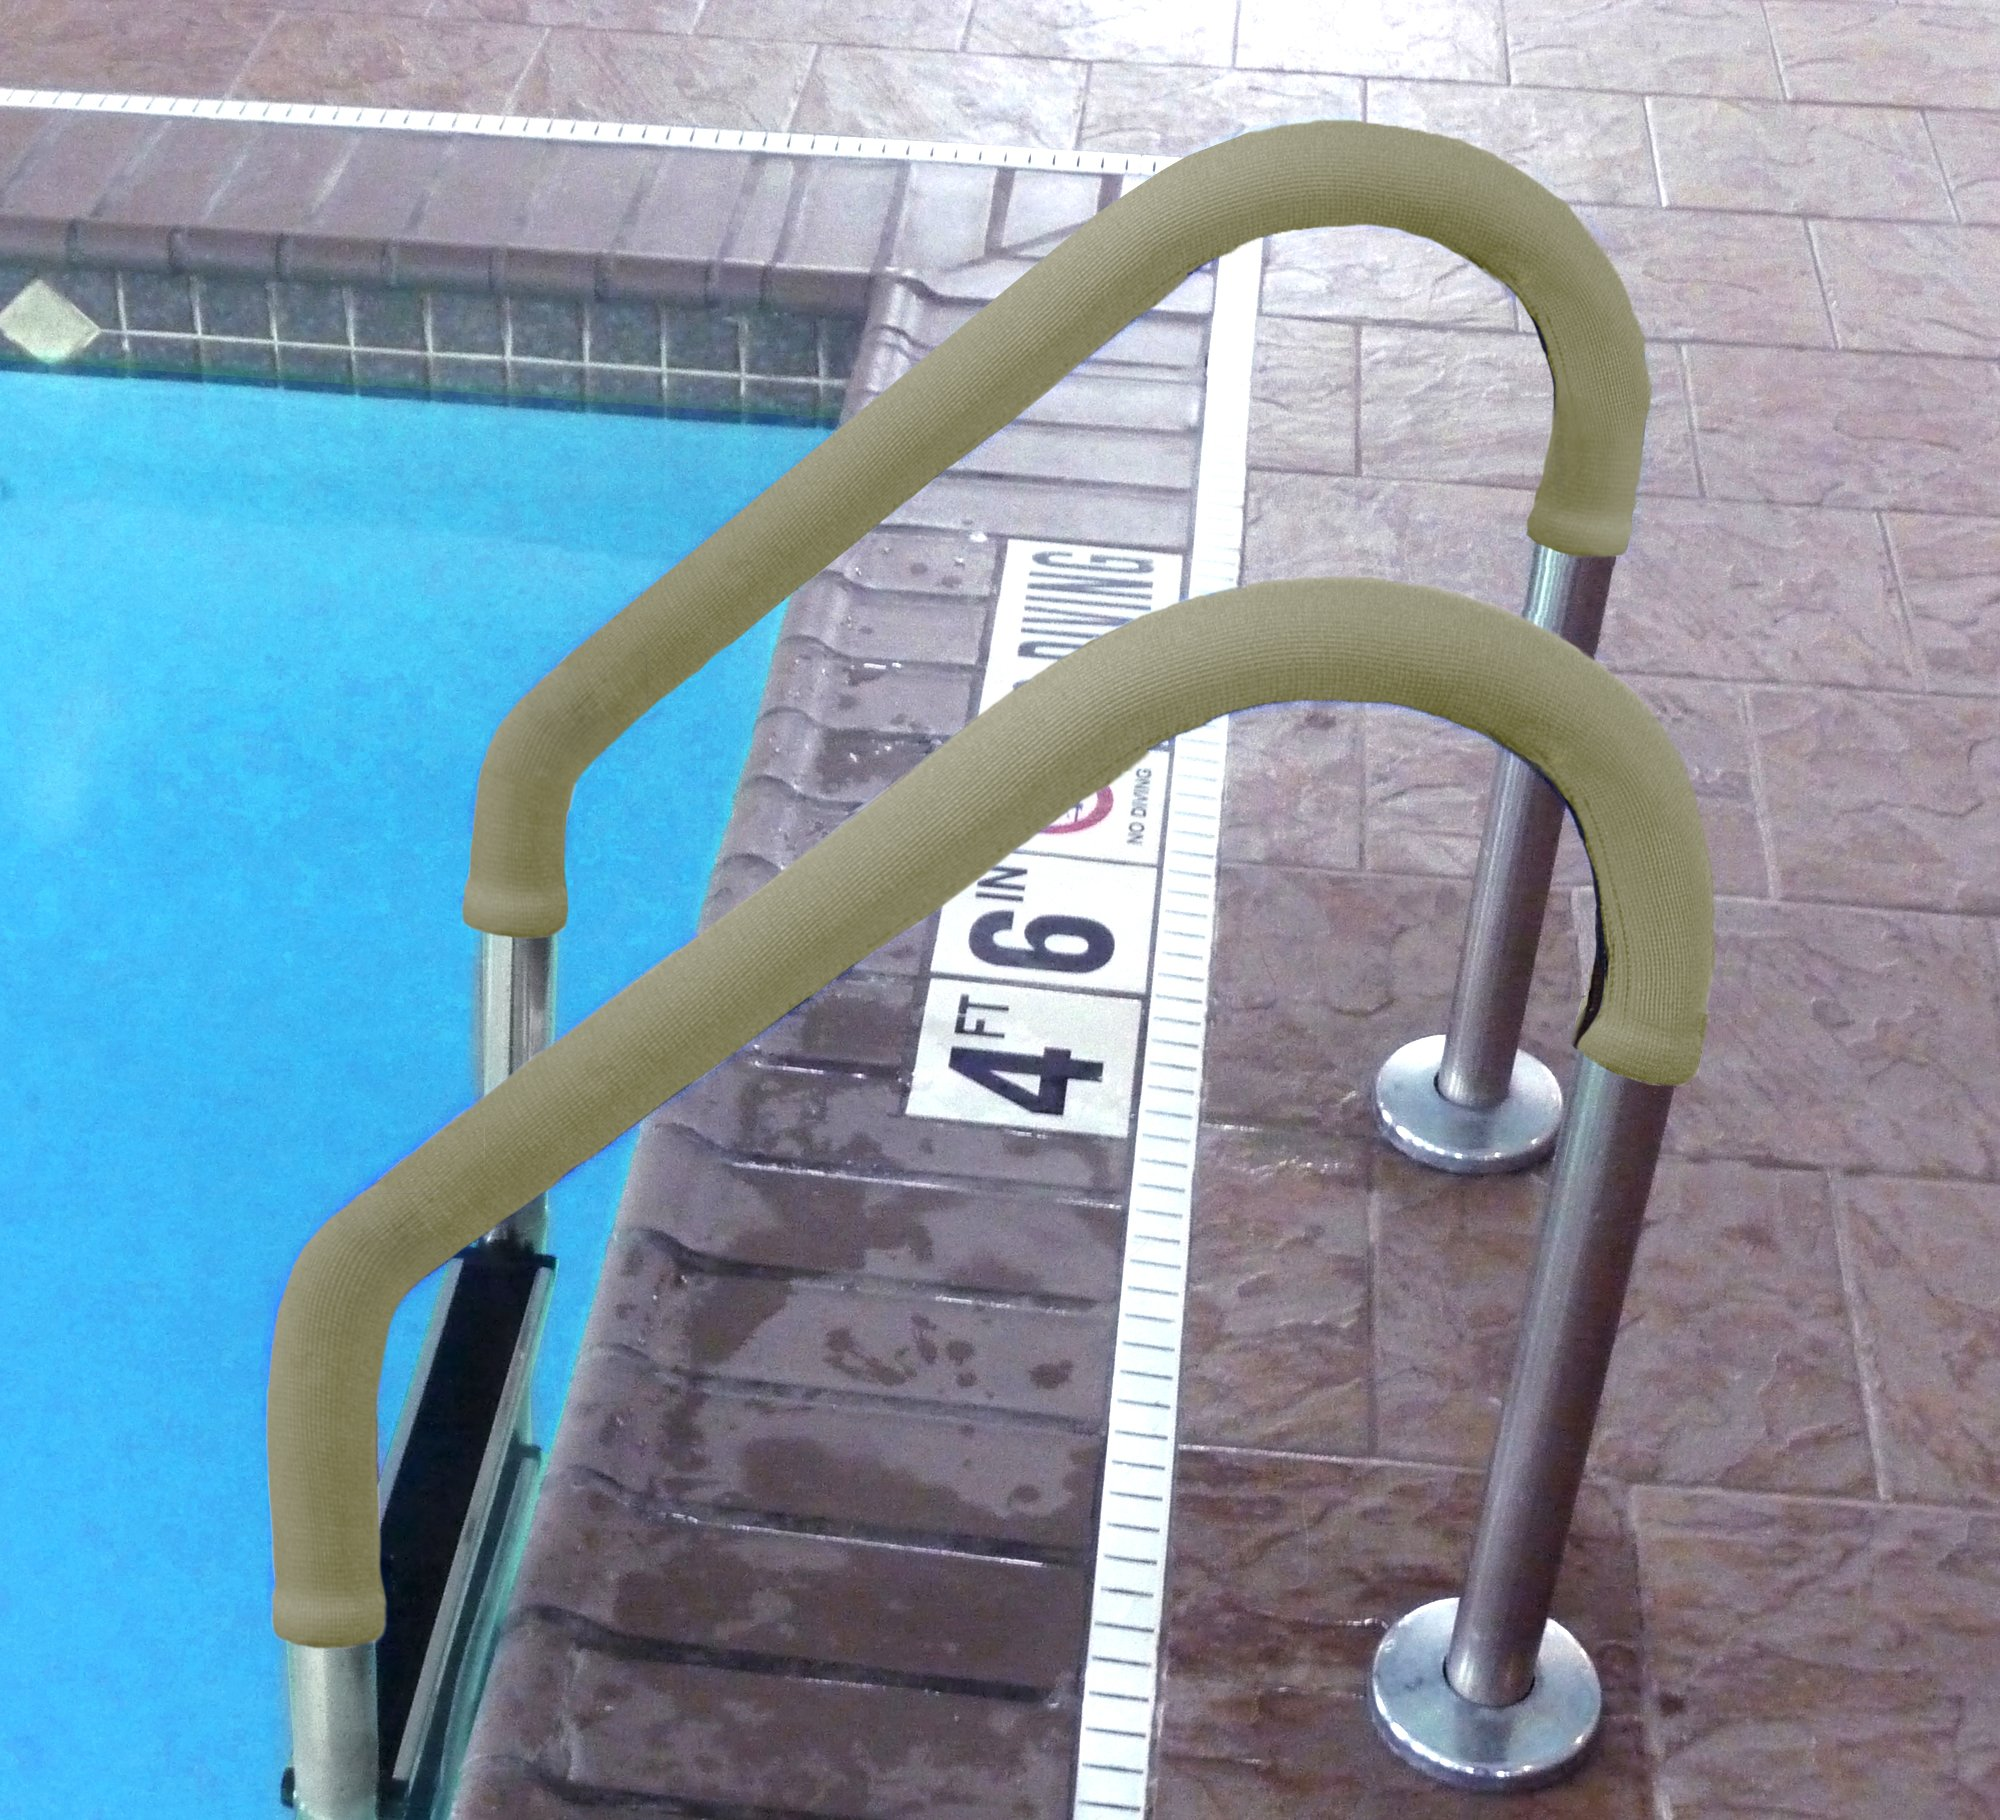 Rail Grips 6 foot tan by Blue Wave